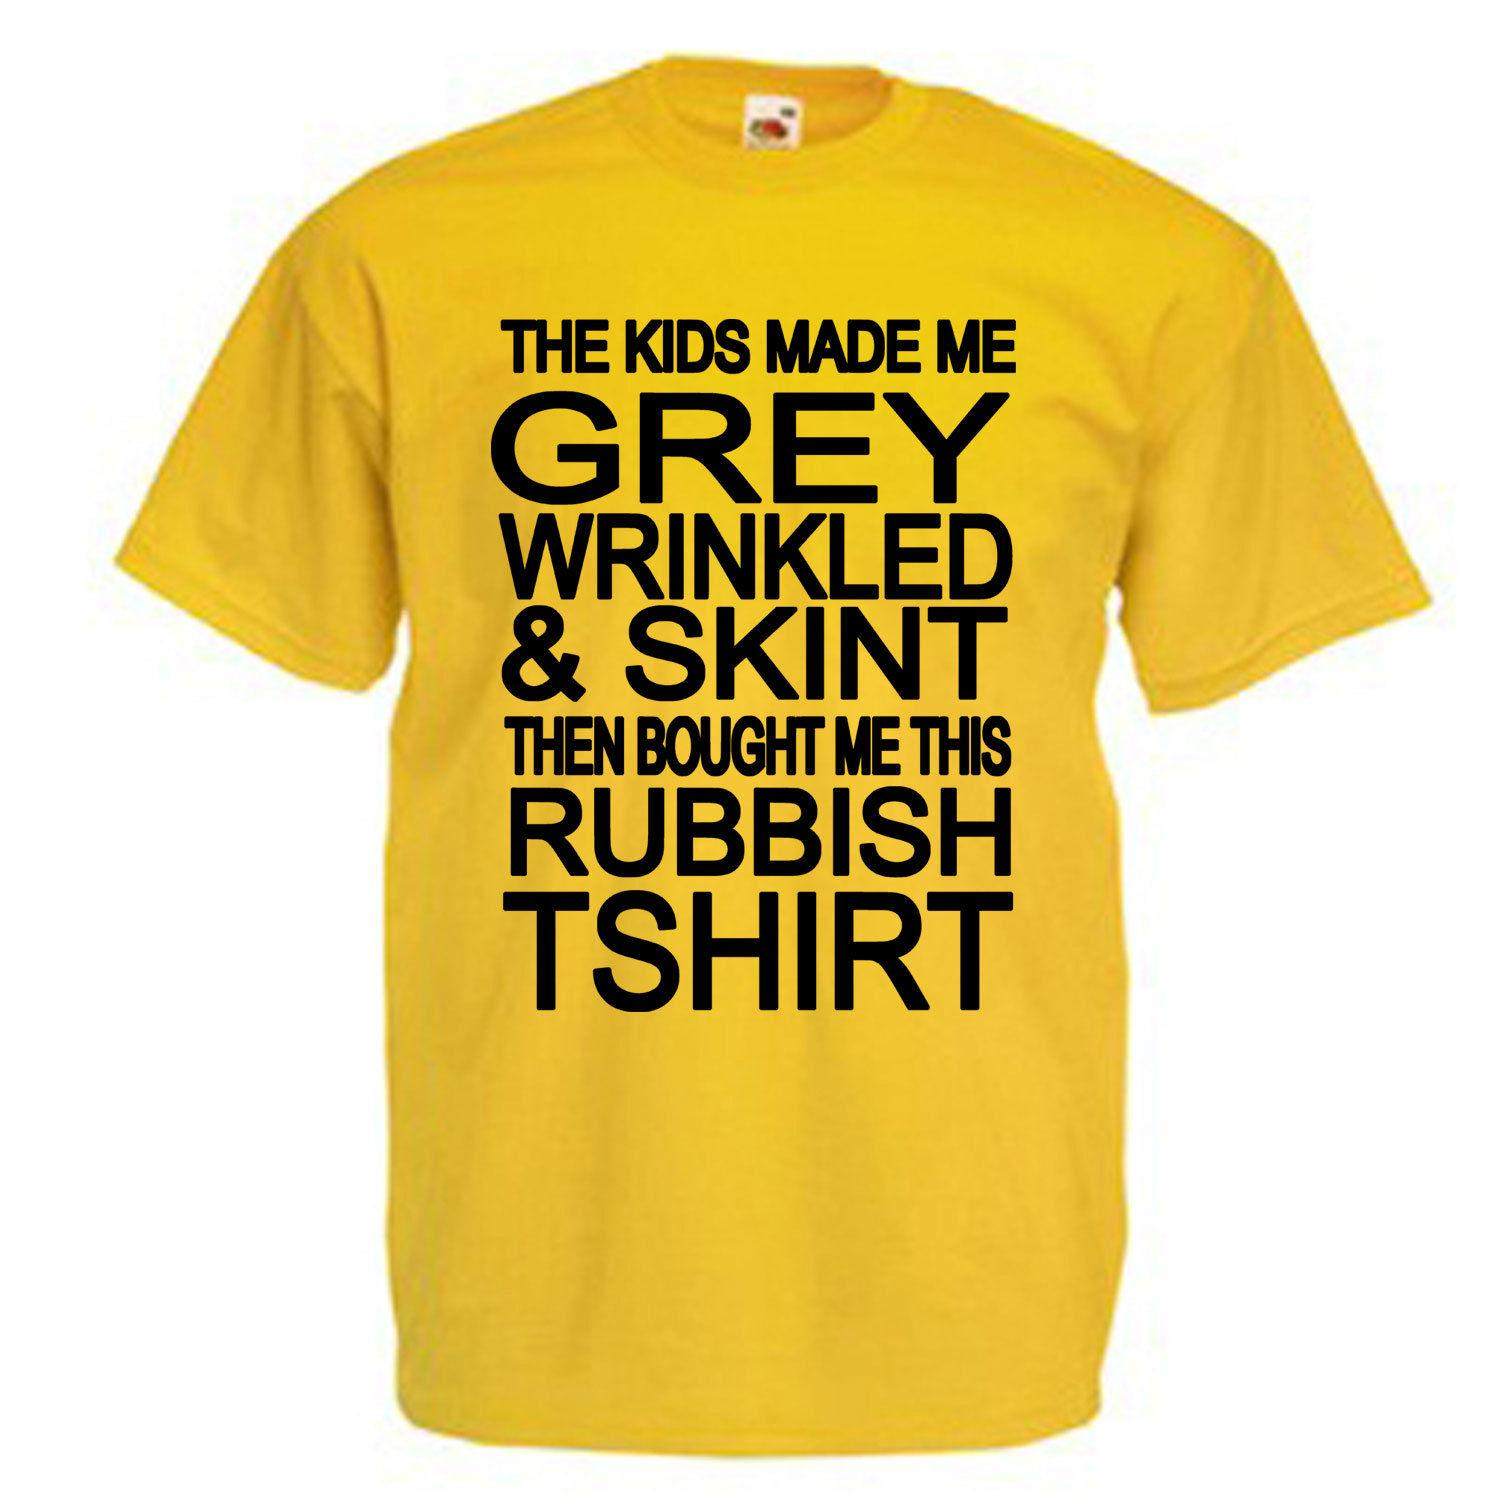 1b4cdf268612 The Kids Made Me Adult T Shirt Men Women Unisex Fashion Tshirt Funny Cool  Top Tee Black Tees Shirts Cheap Design And Buy T Shirts From  Besttshirts201806, ...